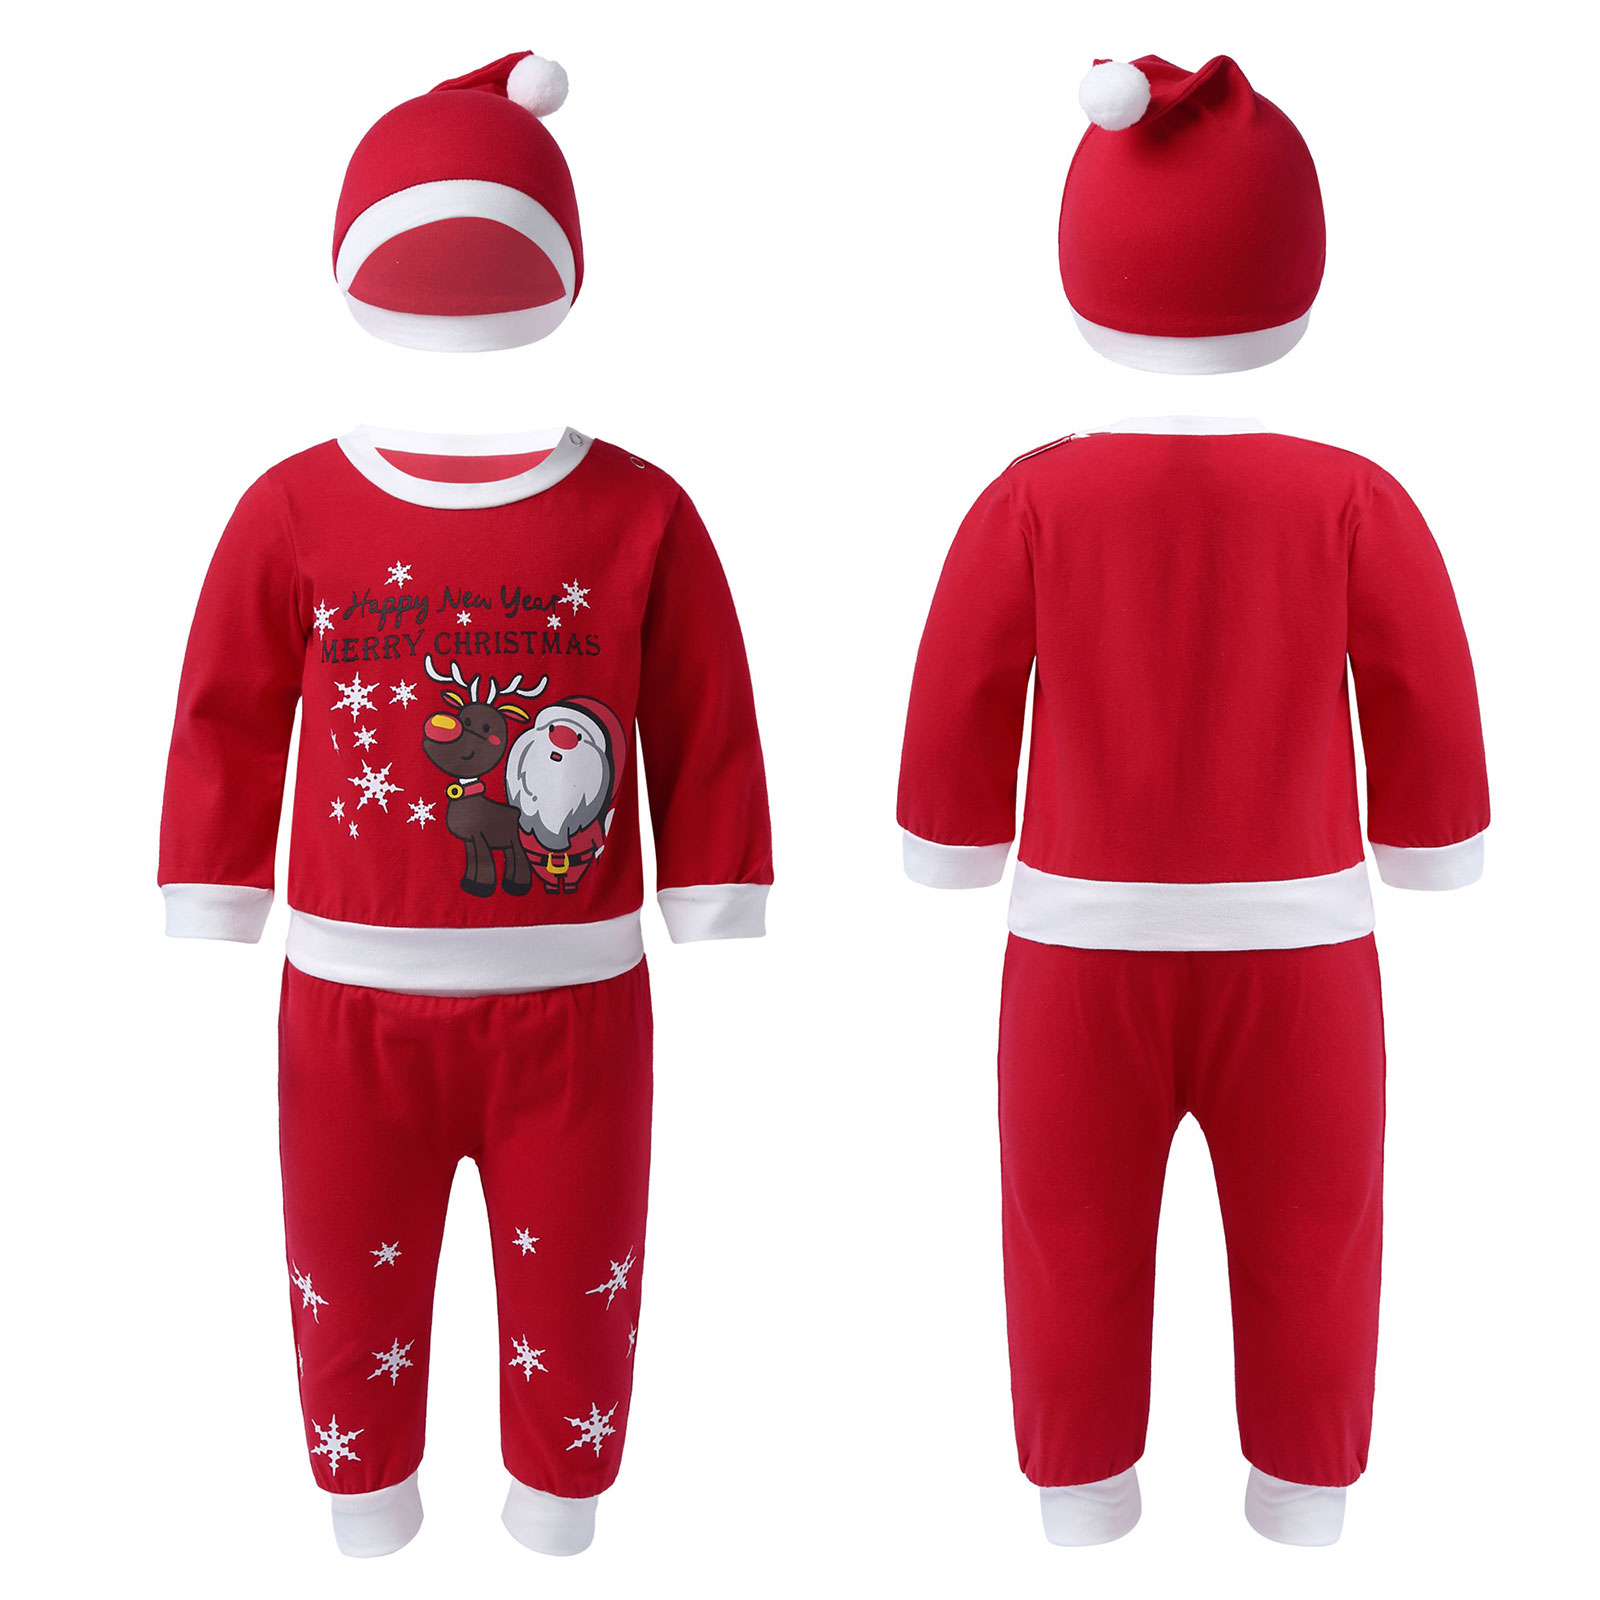 Baby Girls Christmas Newborn Toddler Xmas Clothes Sets Letter Printed Romper Tops with Pants Hat Out